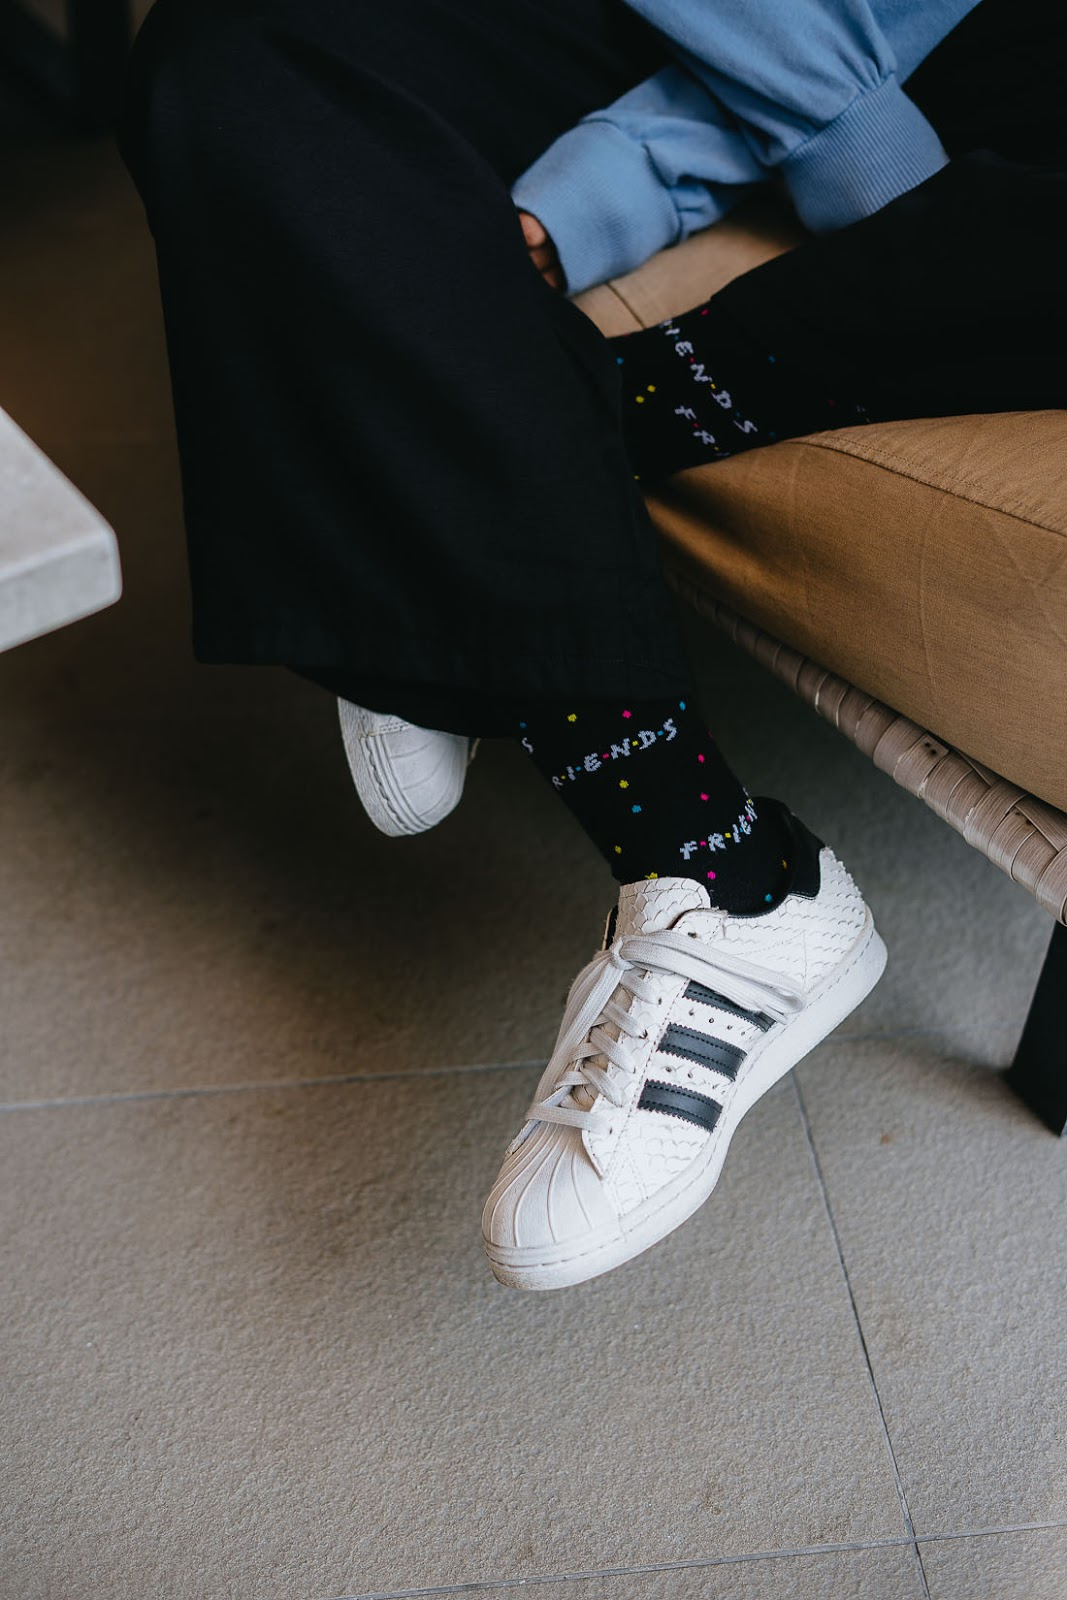 Friends socks from Typo with snakeskin Adidas Superstar sneakers